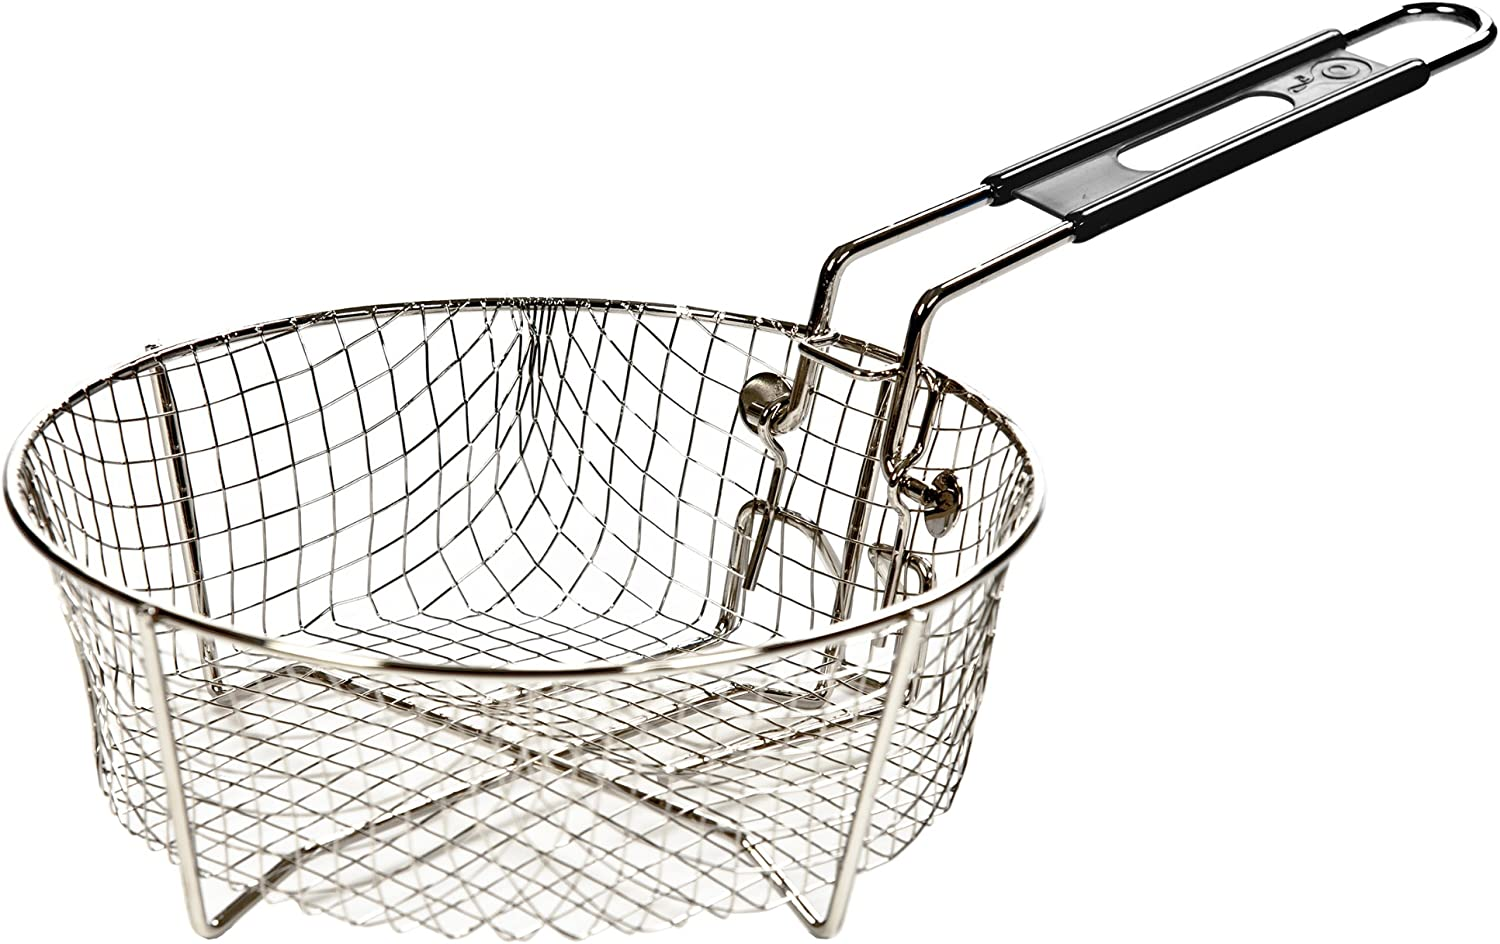 Lodge 8FB2 Deep Fry Basket, 9-inch,Silver